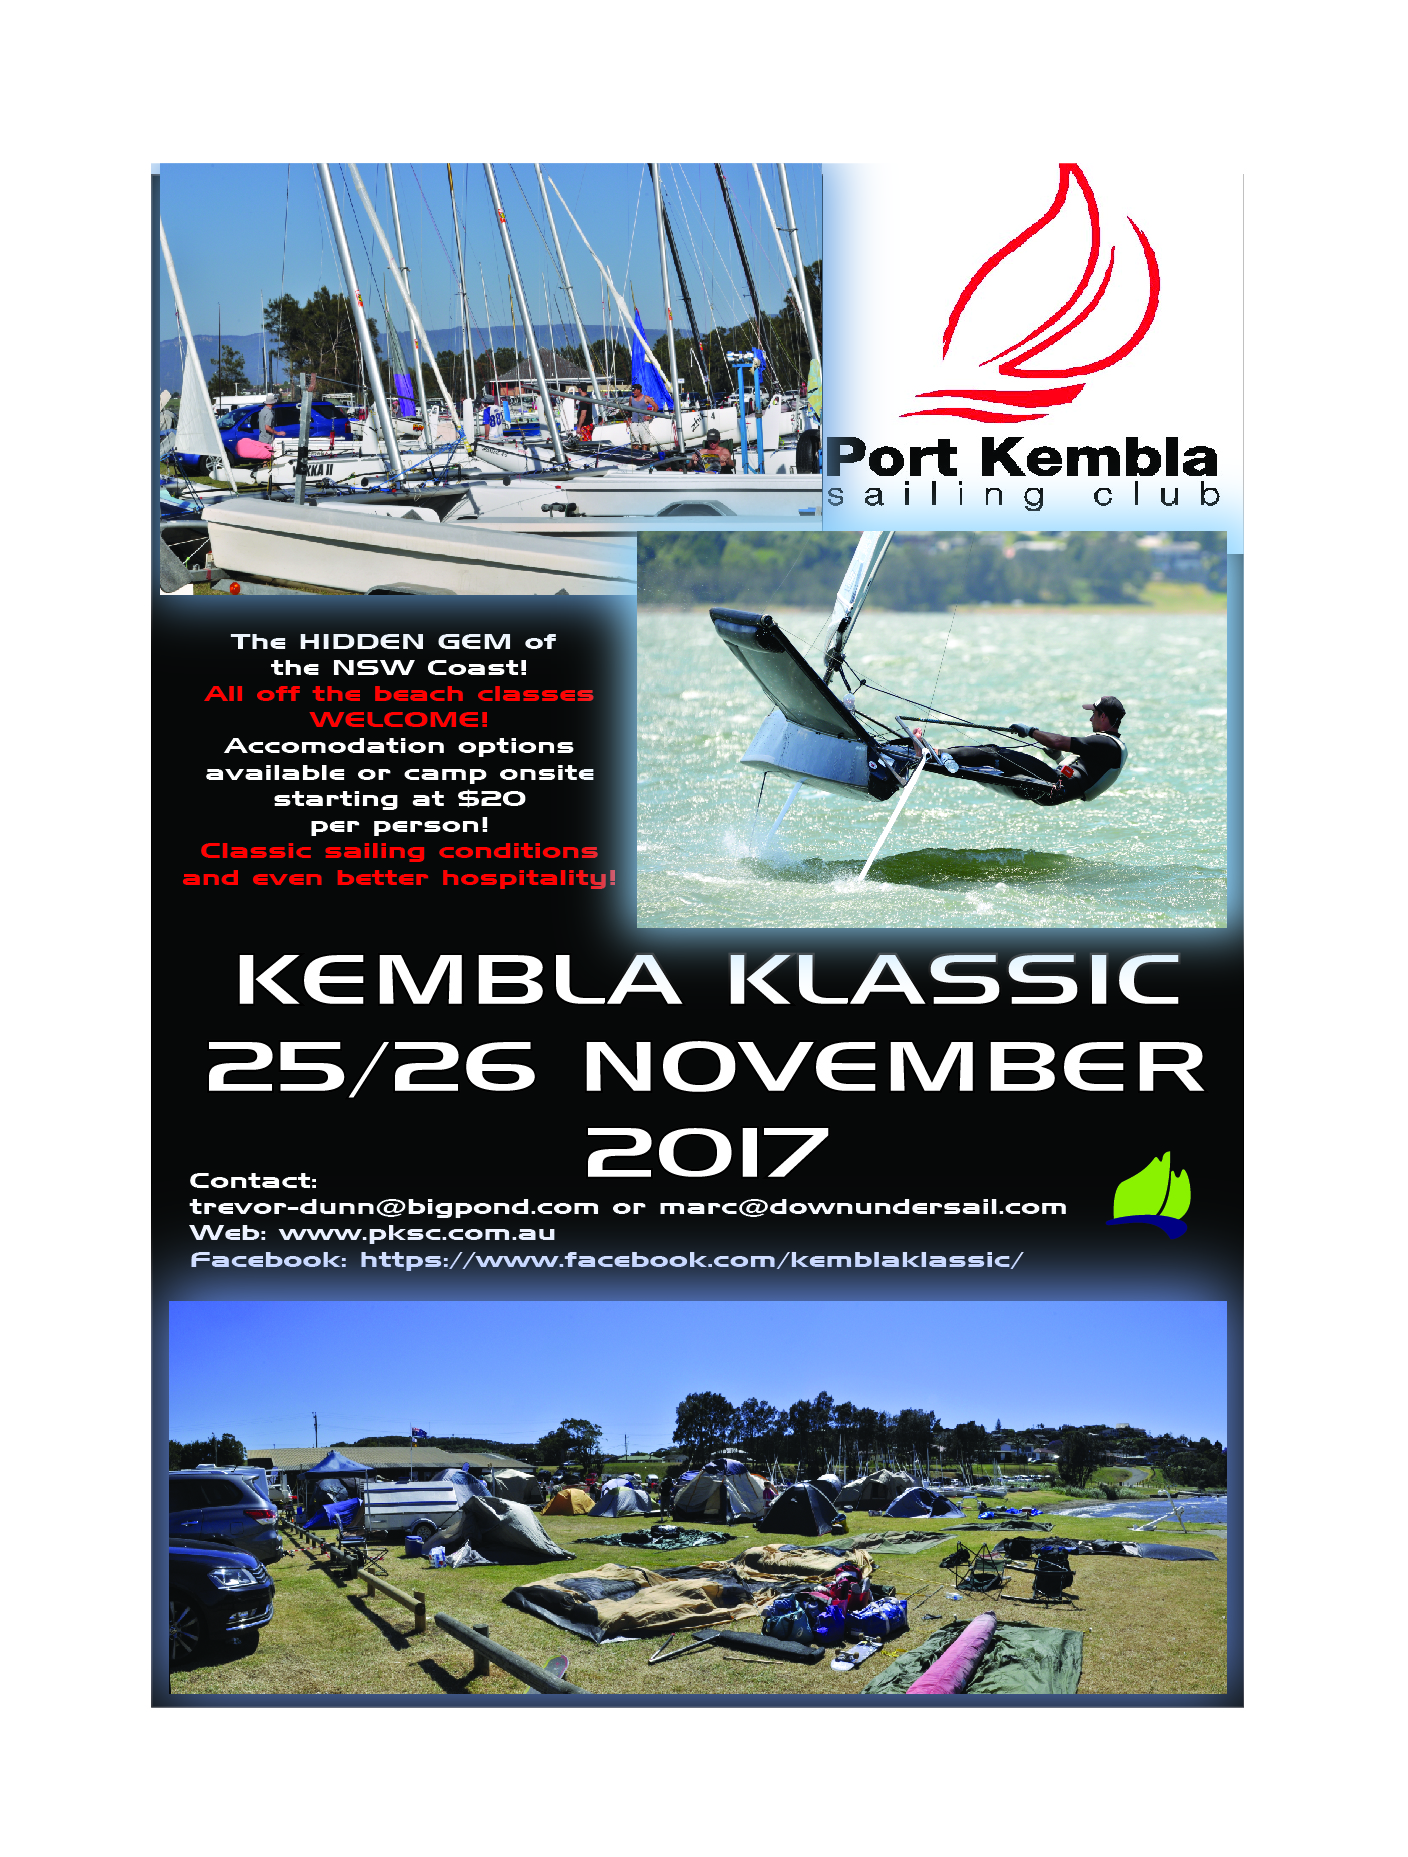 Kembla Klassic set to sizzle the south coast!